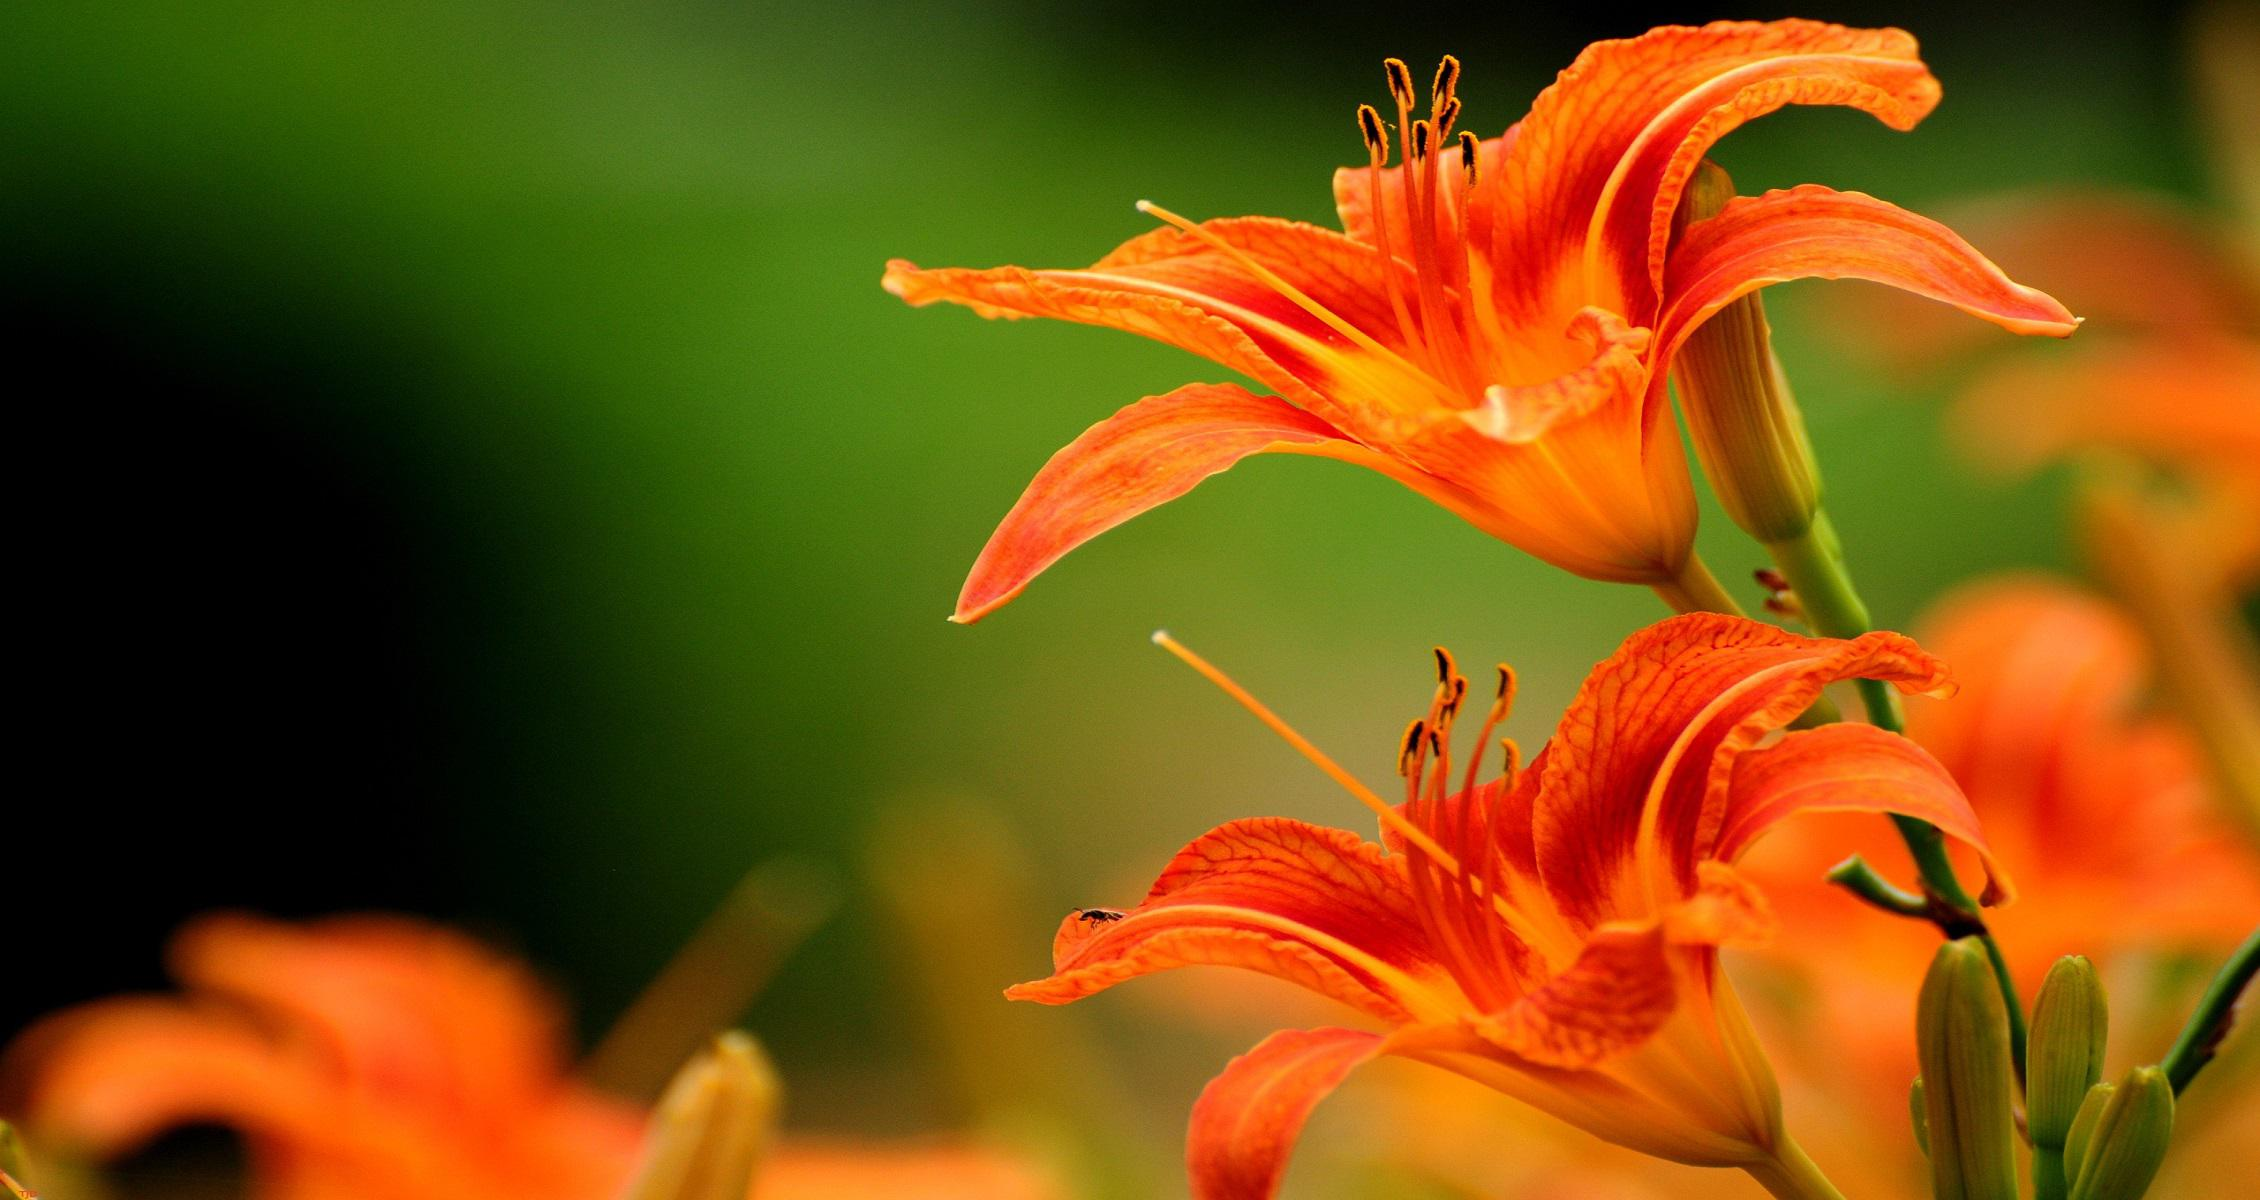 Tiger Lily Flower Wallpaper Full HD Pink Hd Water White 2260x1200